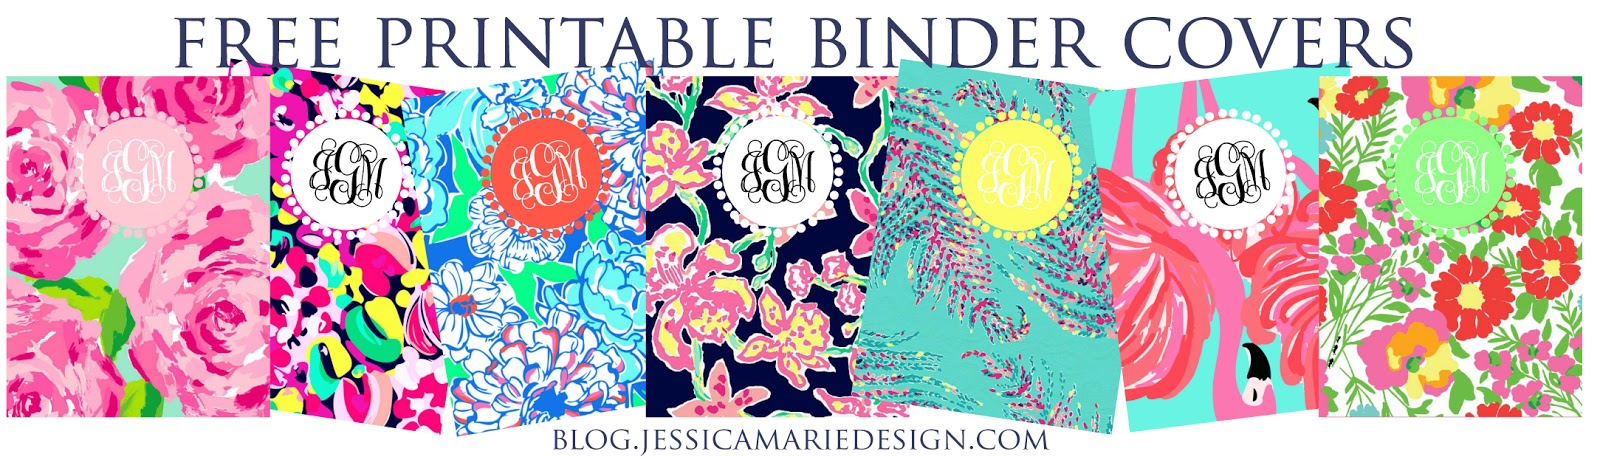 picture about Free Monogram Printable named Jessica Marie Layout Weblog: Preppy Printable Binder Addresses